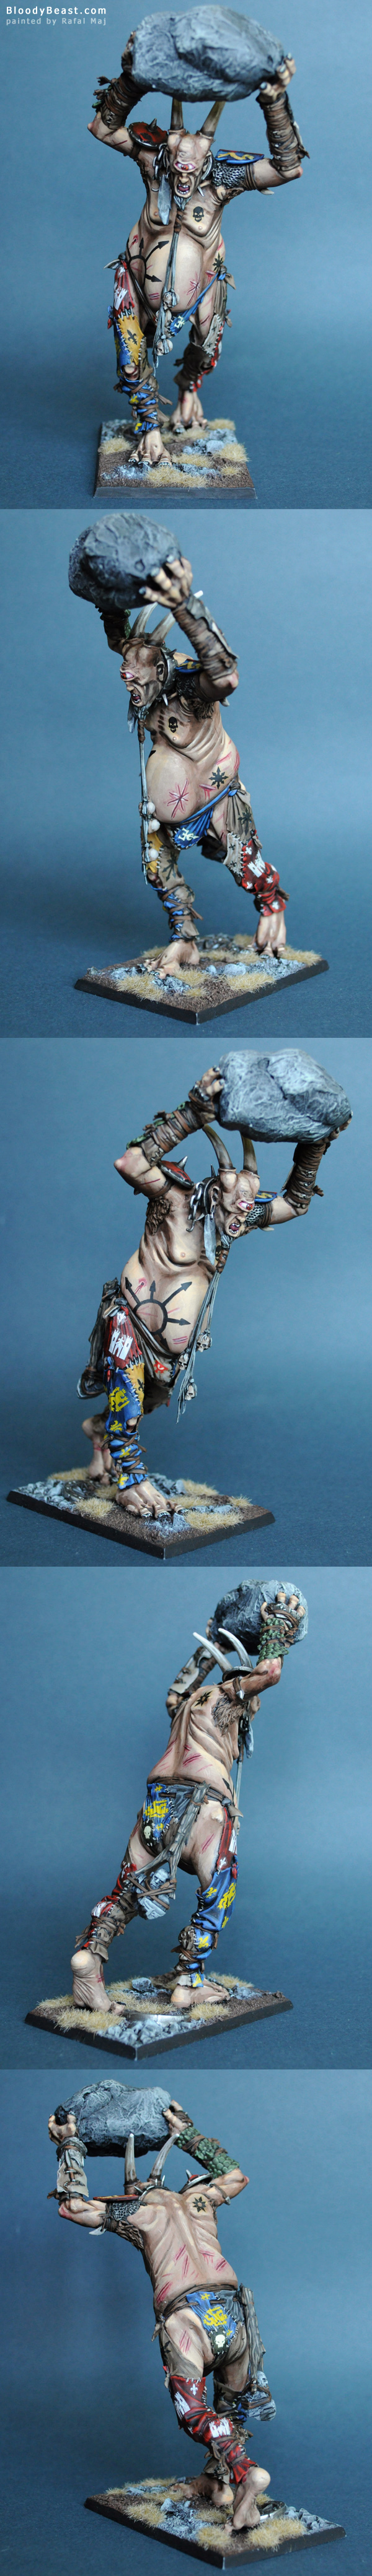 Beastmen Cygor painted by Rafal Maj (BloodyBeast.com)